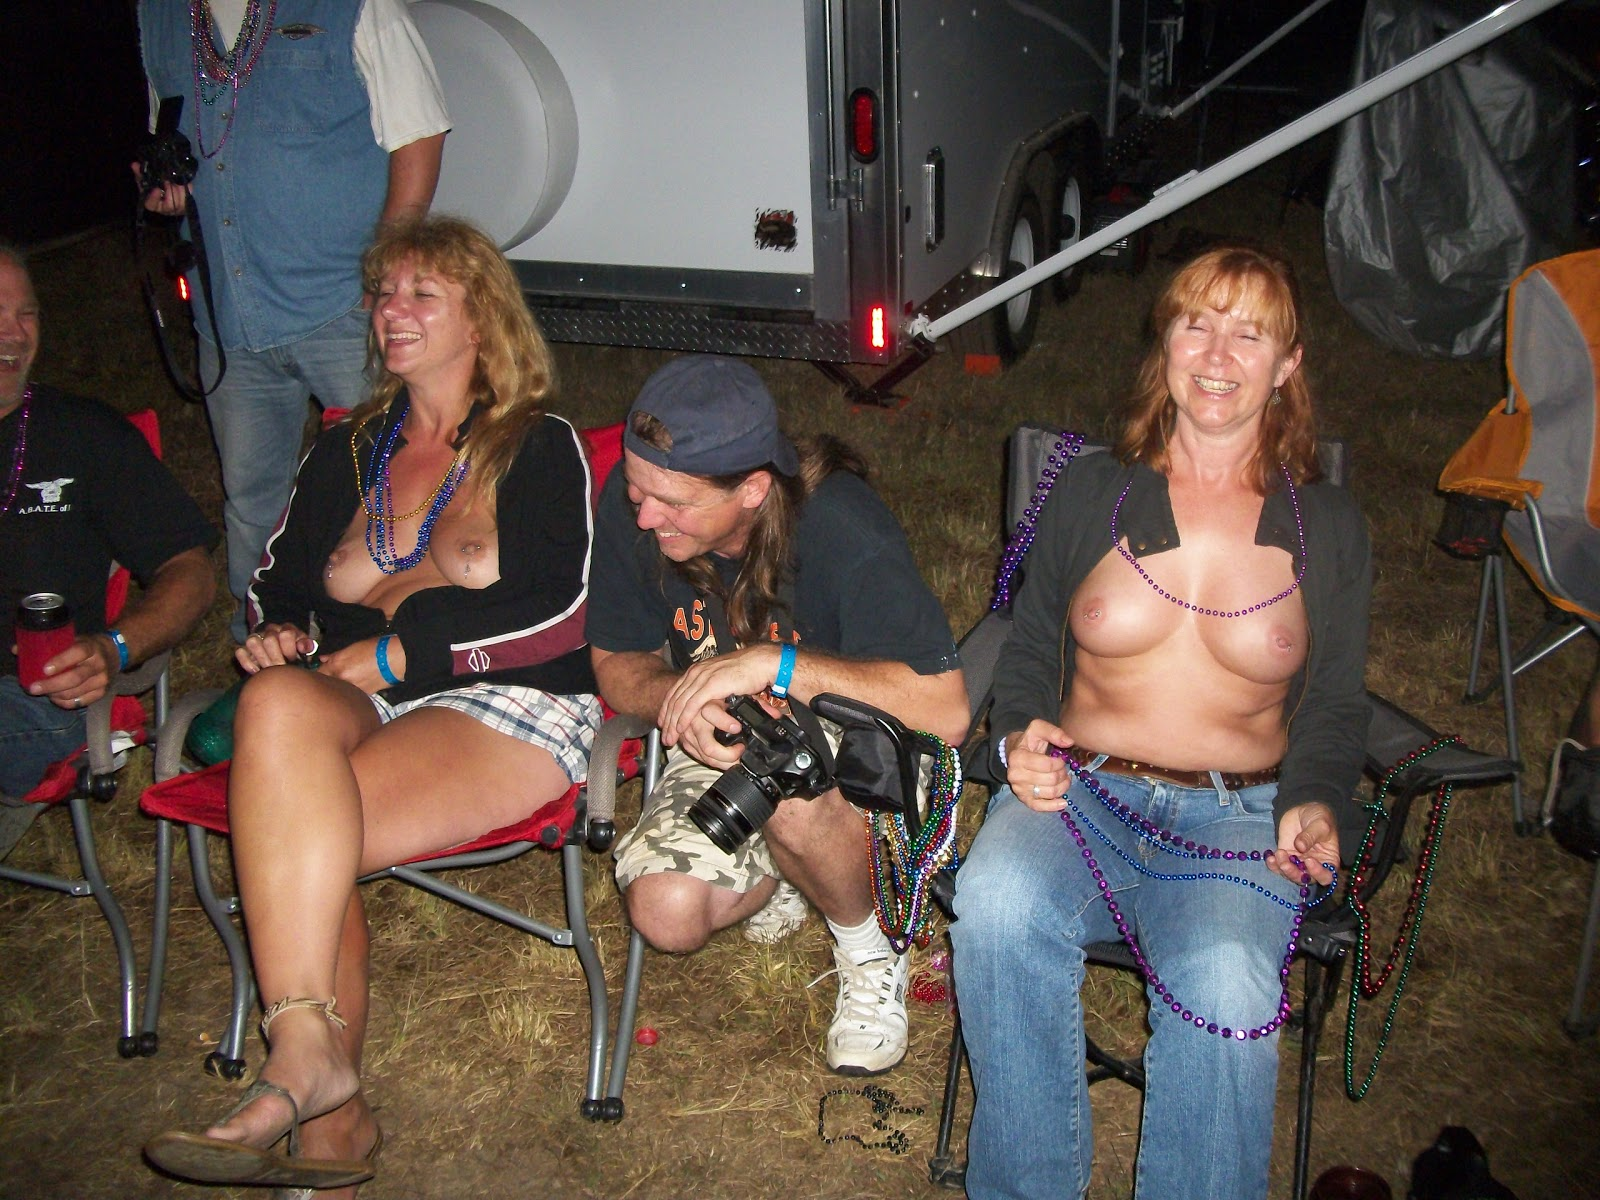 biker babes sucking dicks